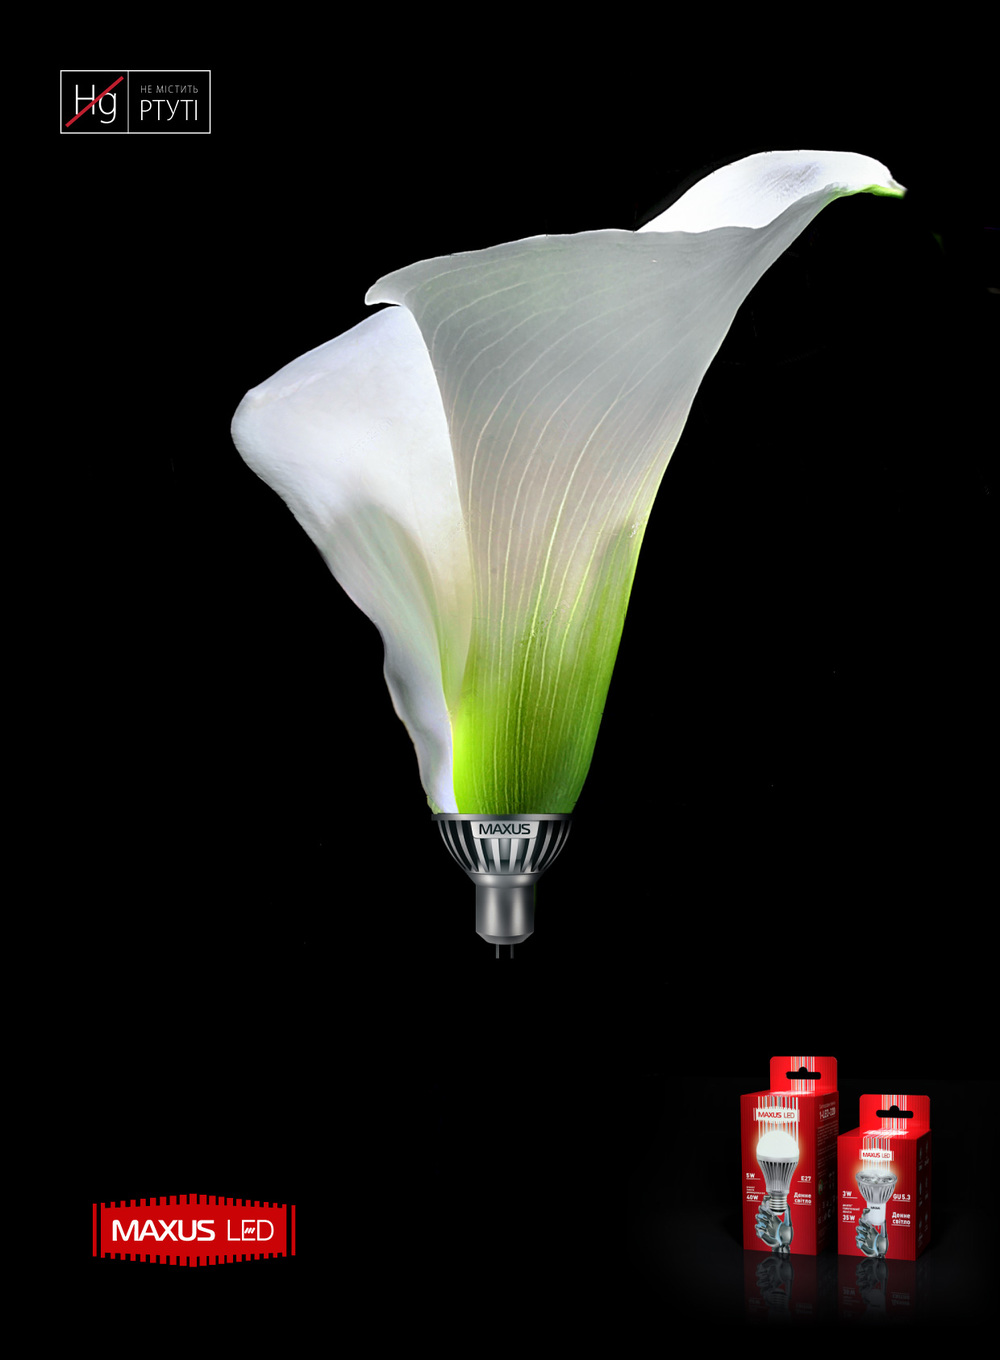 Maxus-LED-Designs-02.jpg